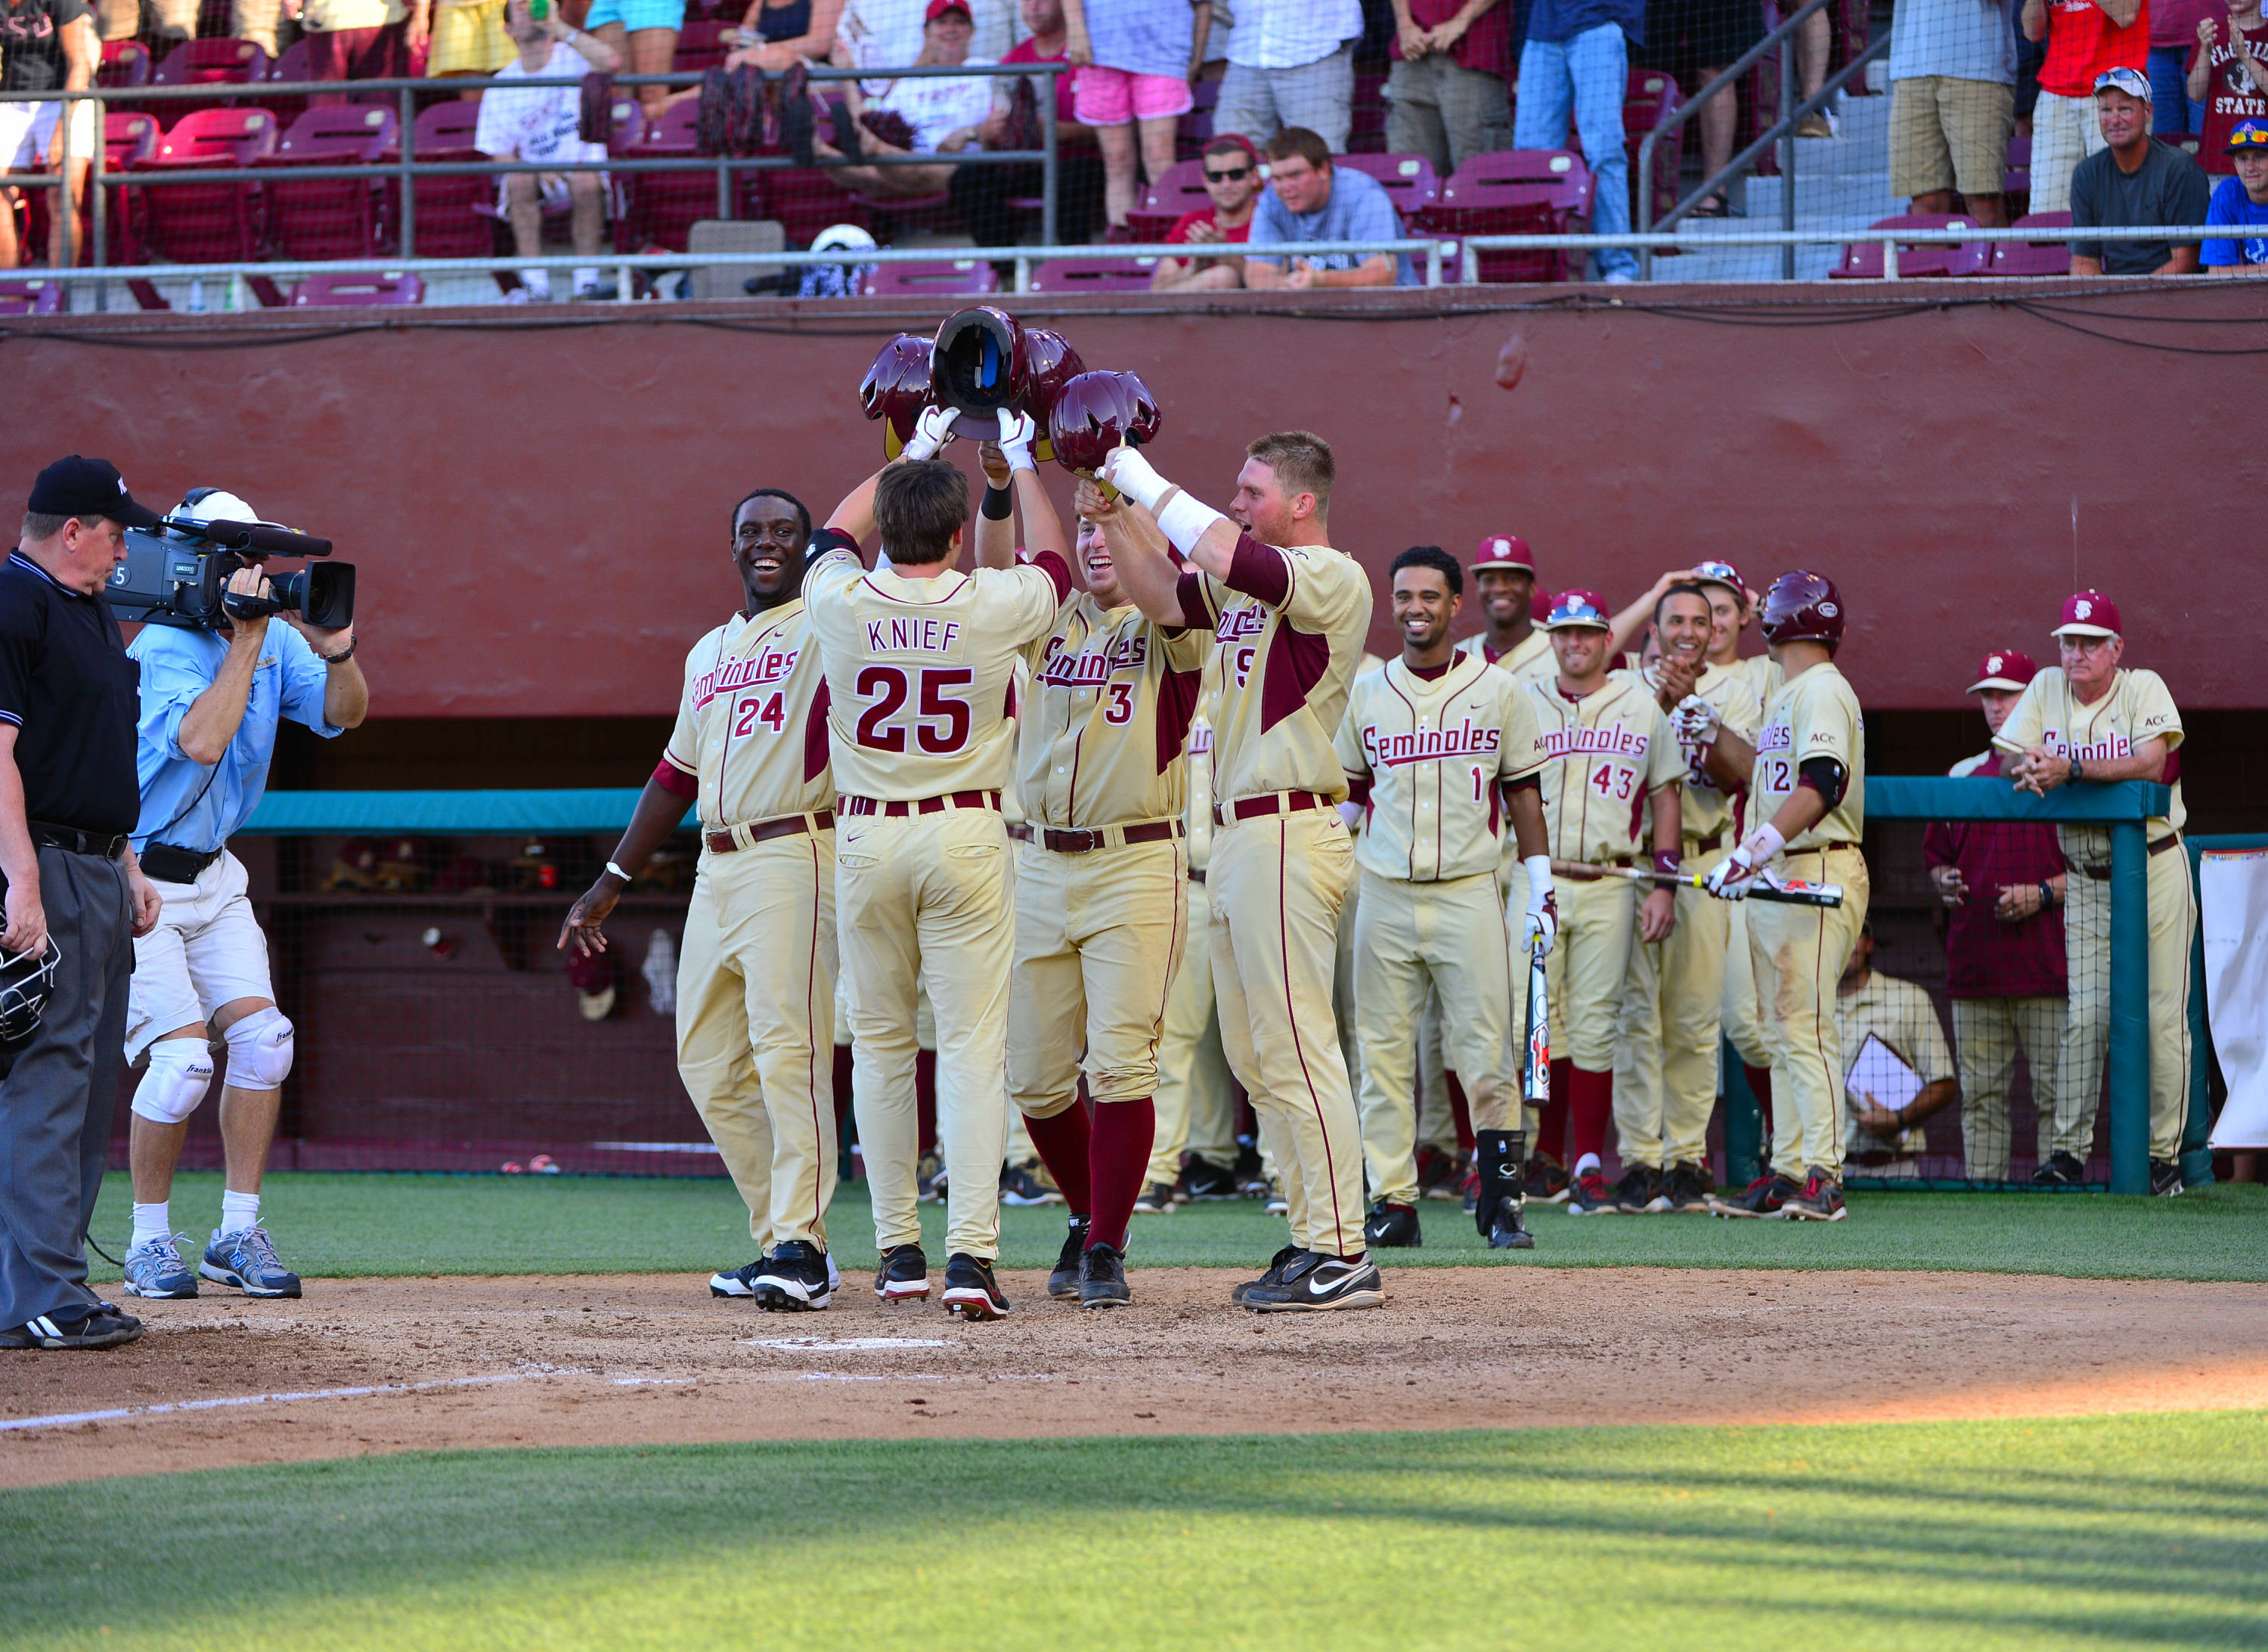 Brett Knief is met at home plate by his teammates after connecting on a grand slam in FSU's win over Troy.